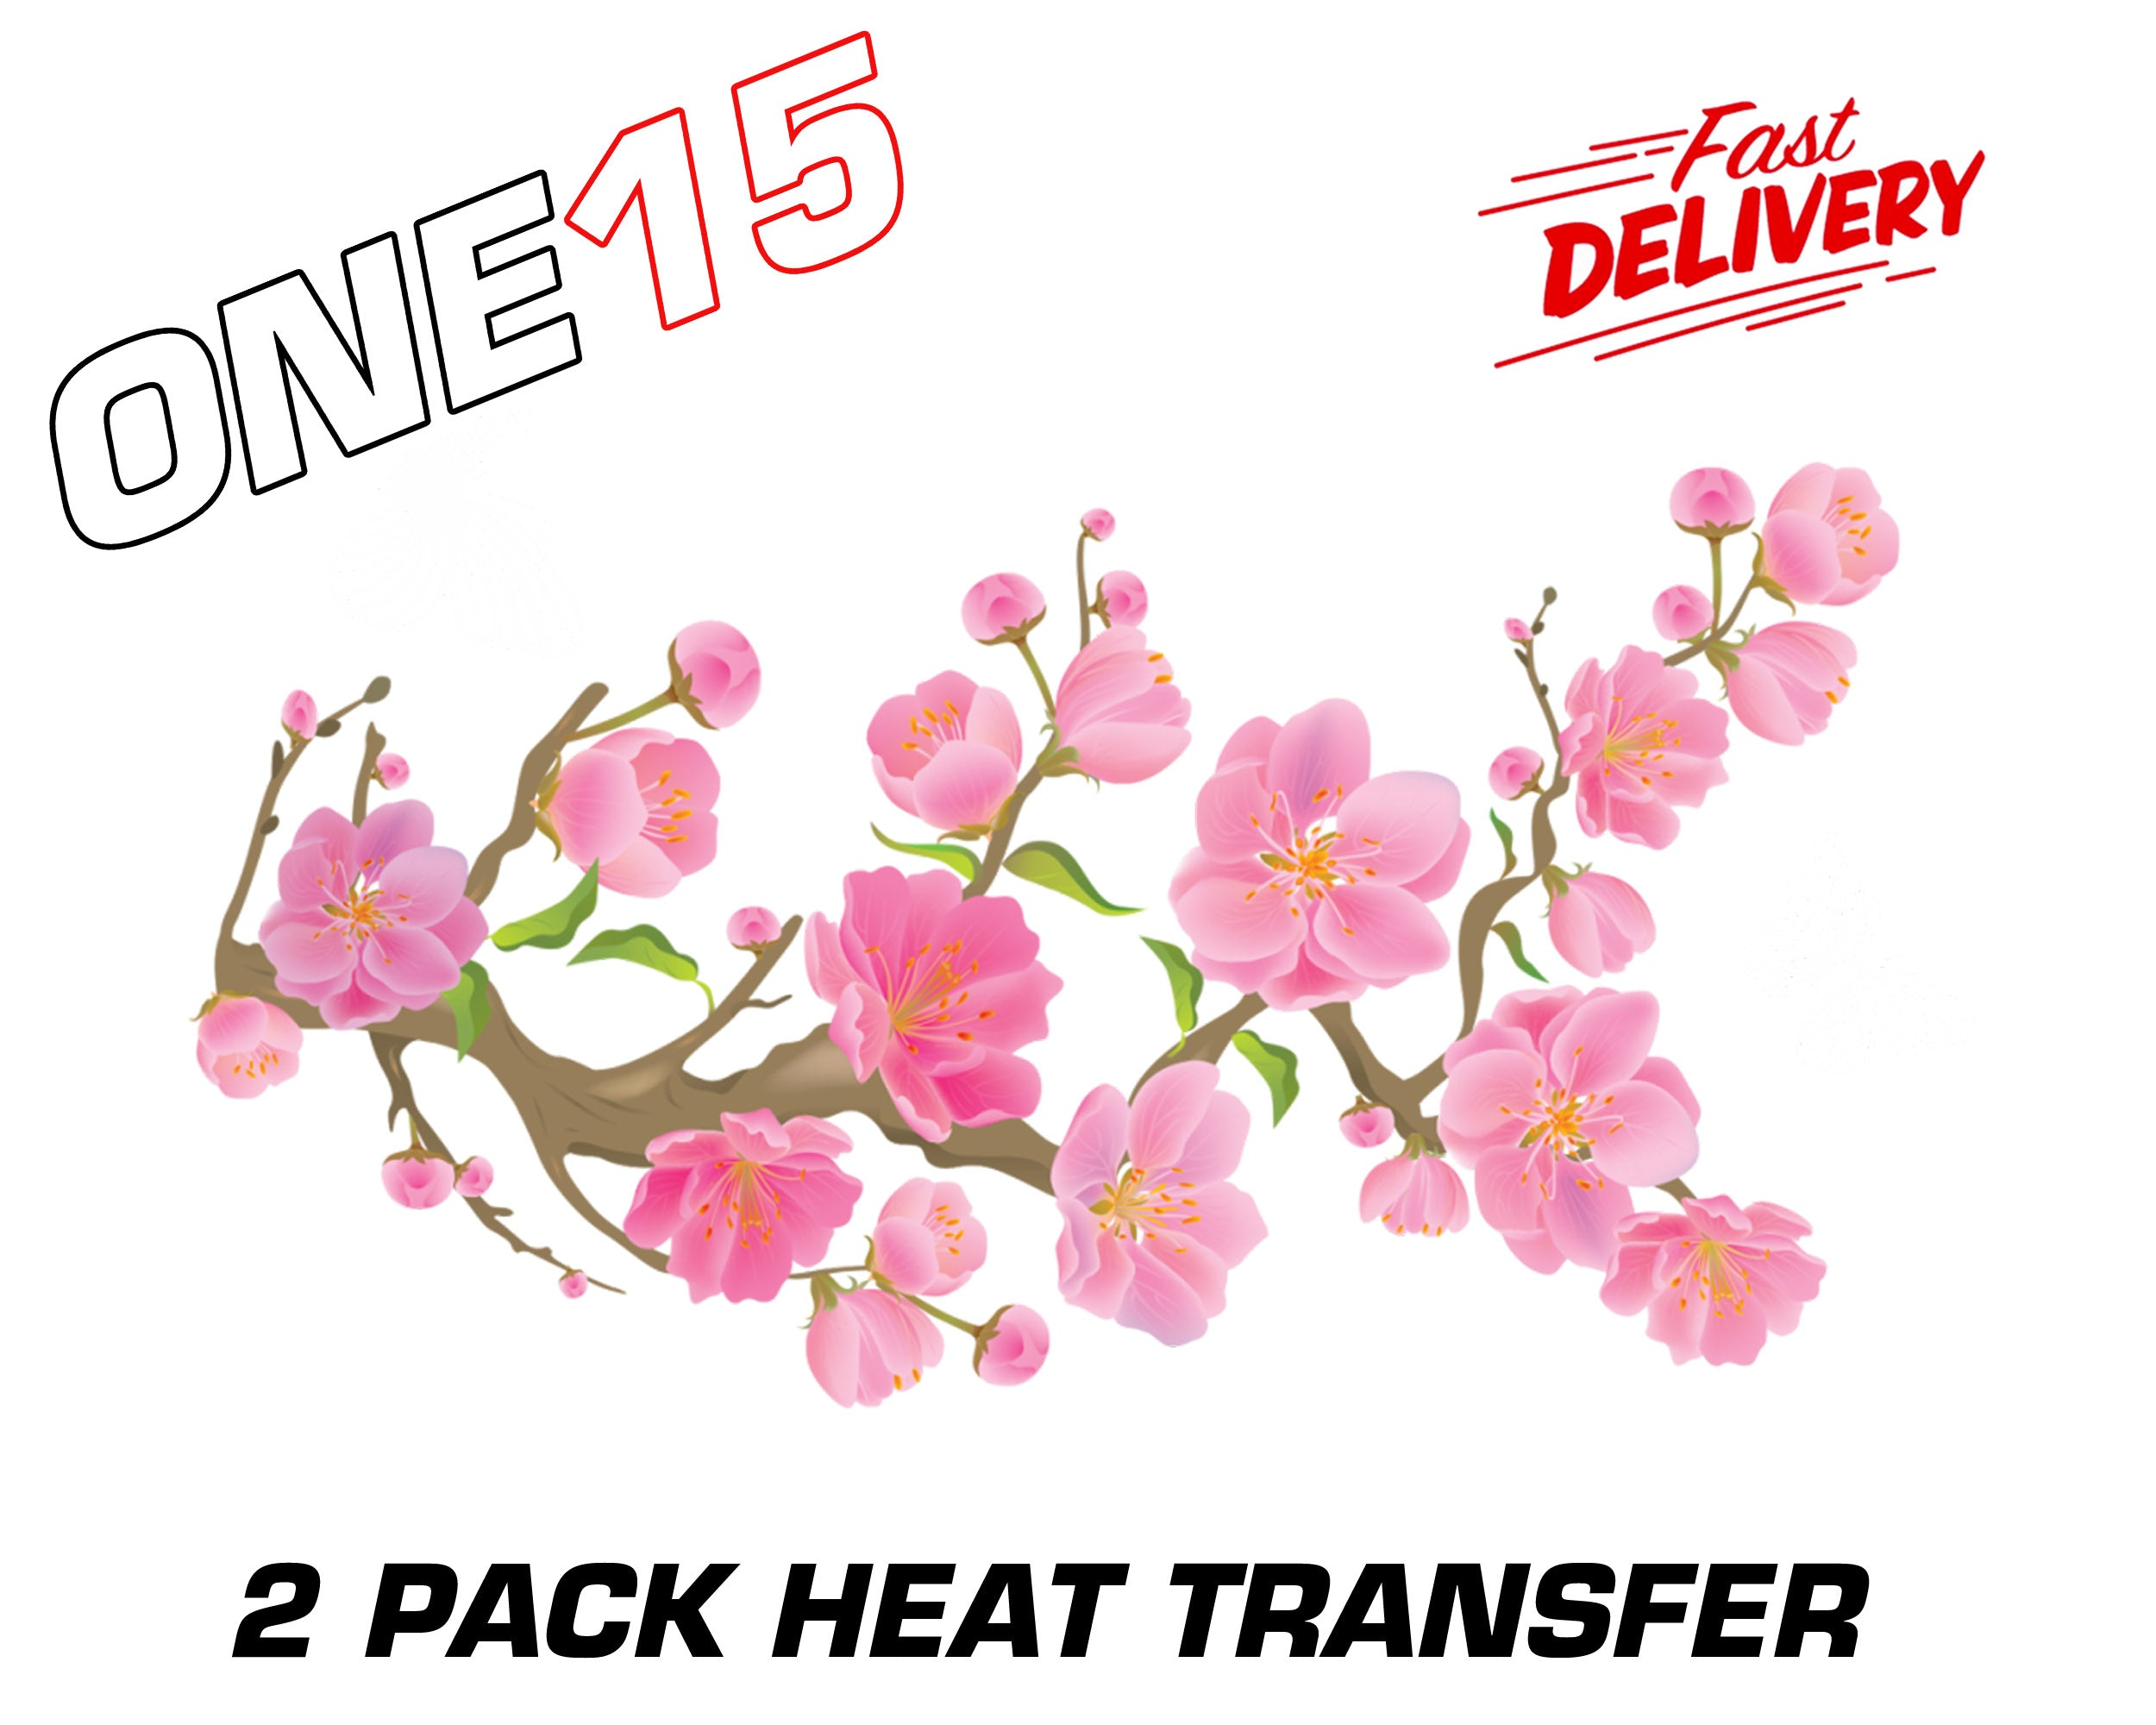 Cherry blossom permanent full color heat activated iron on transfer for shoes pack clothing etc